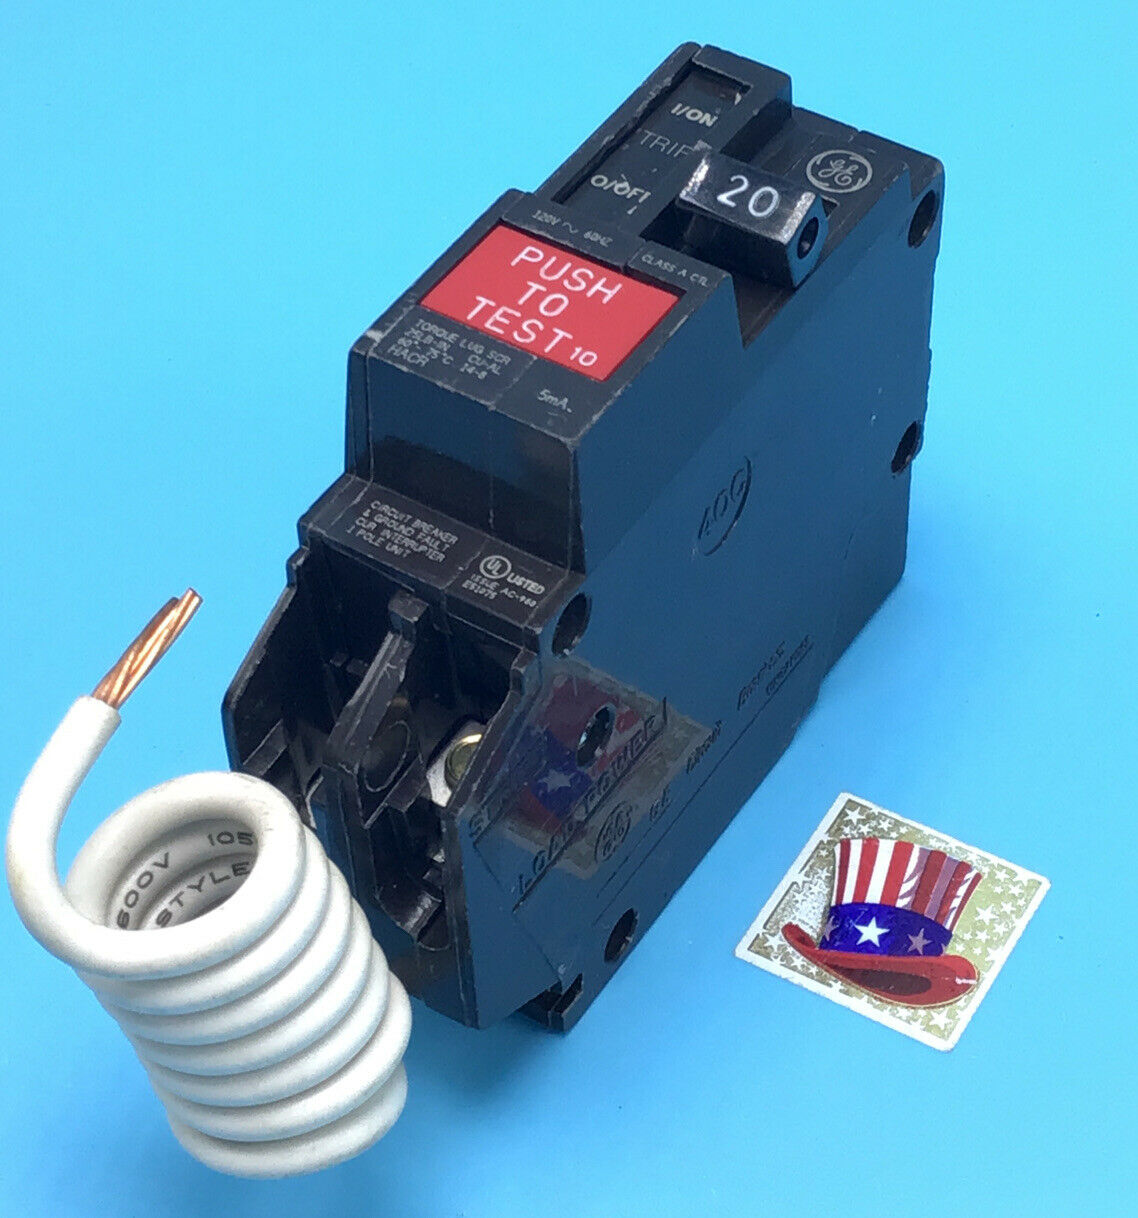 New Circuit Breaker Ge Thql1120gft 20 Amp 1 Pole 120v Self Test Gfci How To Ground Fault Interrupter Thql1120gf Of 2only Available